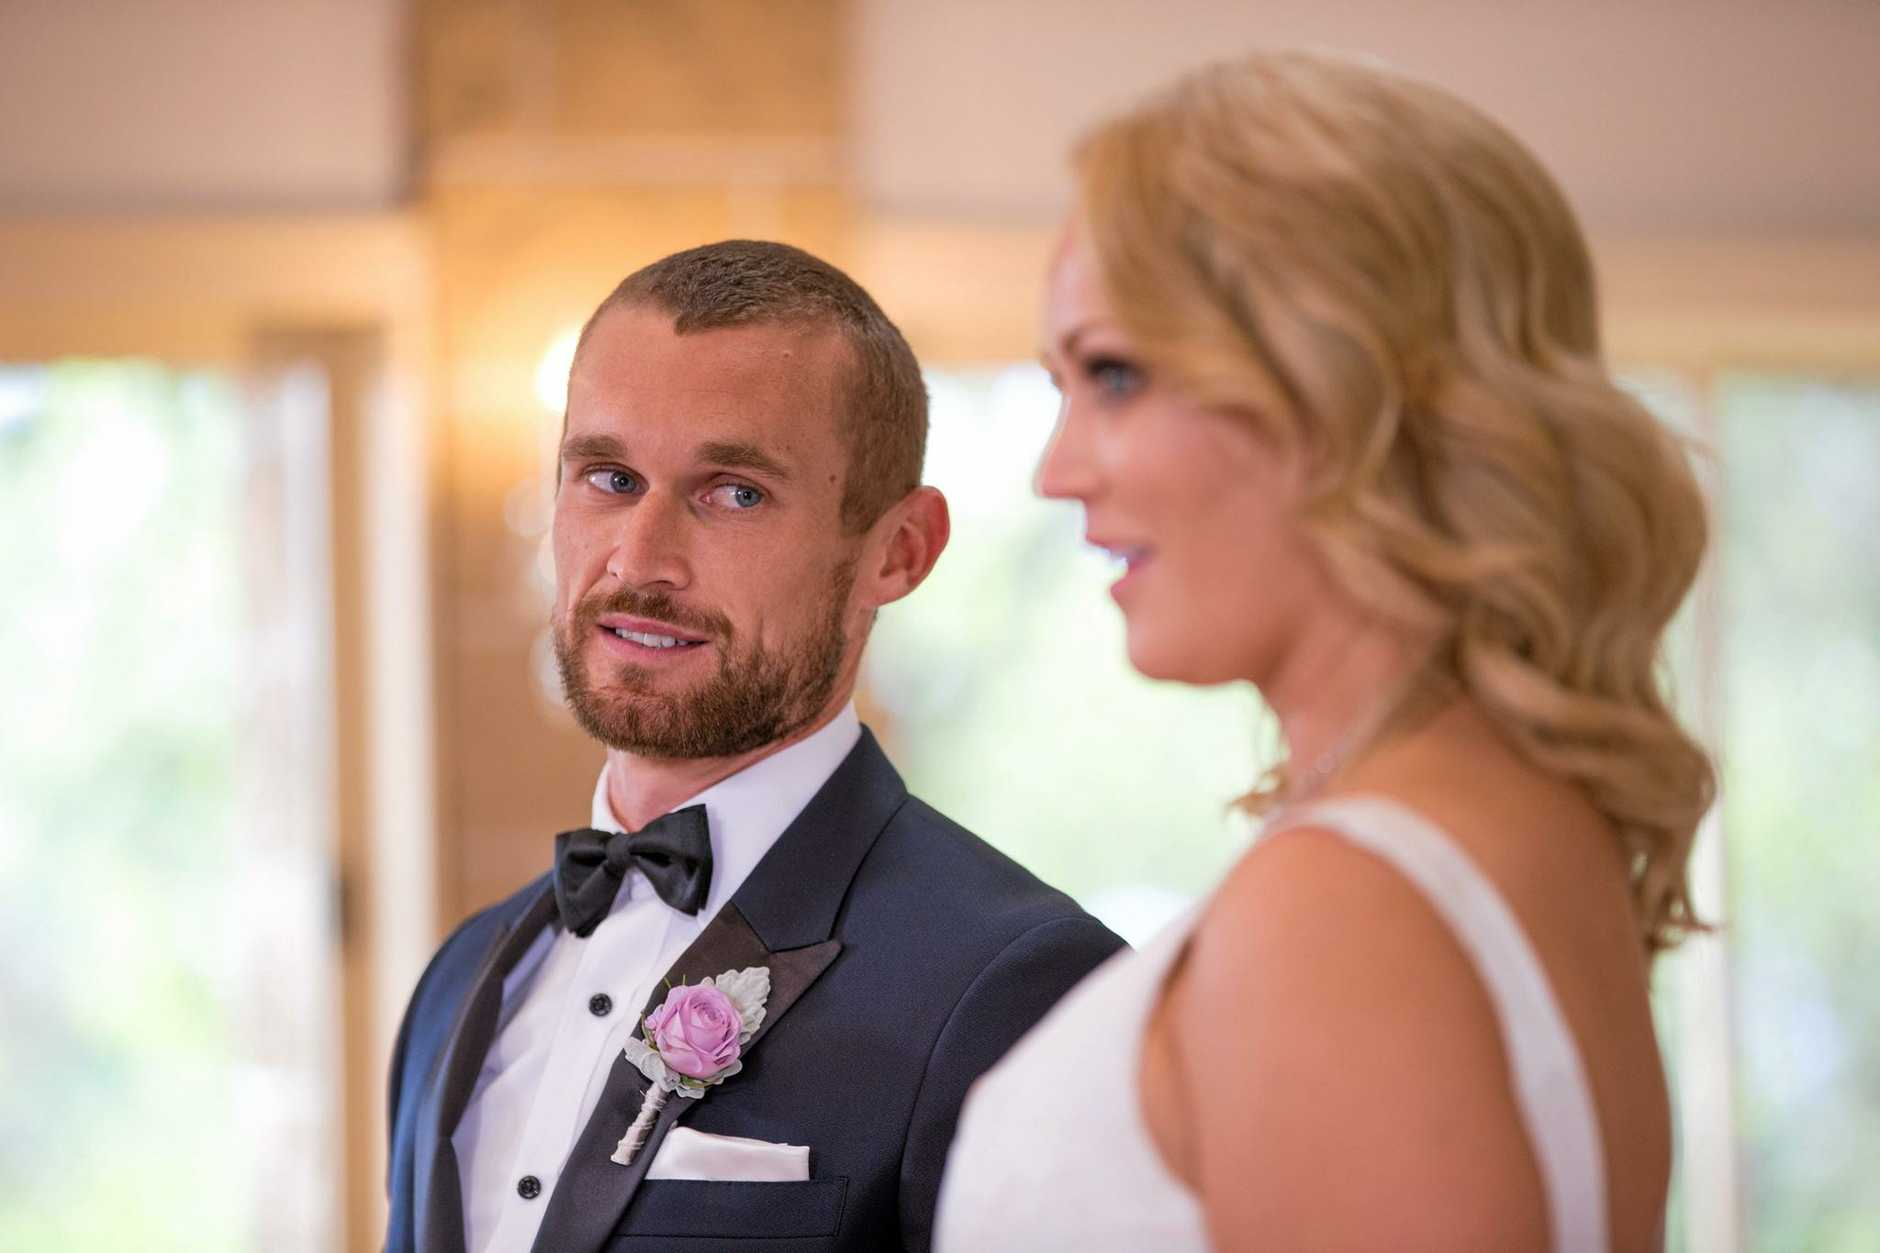 'PRIME TIME FODDER': Clare Verrall and Jono Pitman in a scene from the TV series Married At First Sight. Supplied by Channel 9.